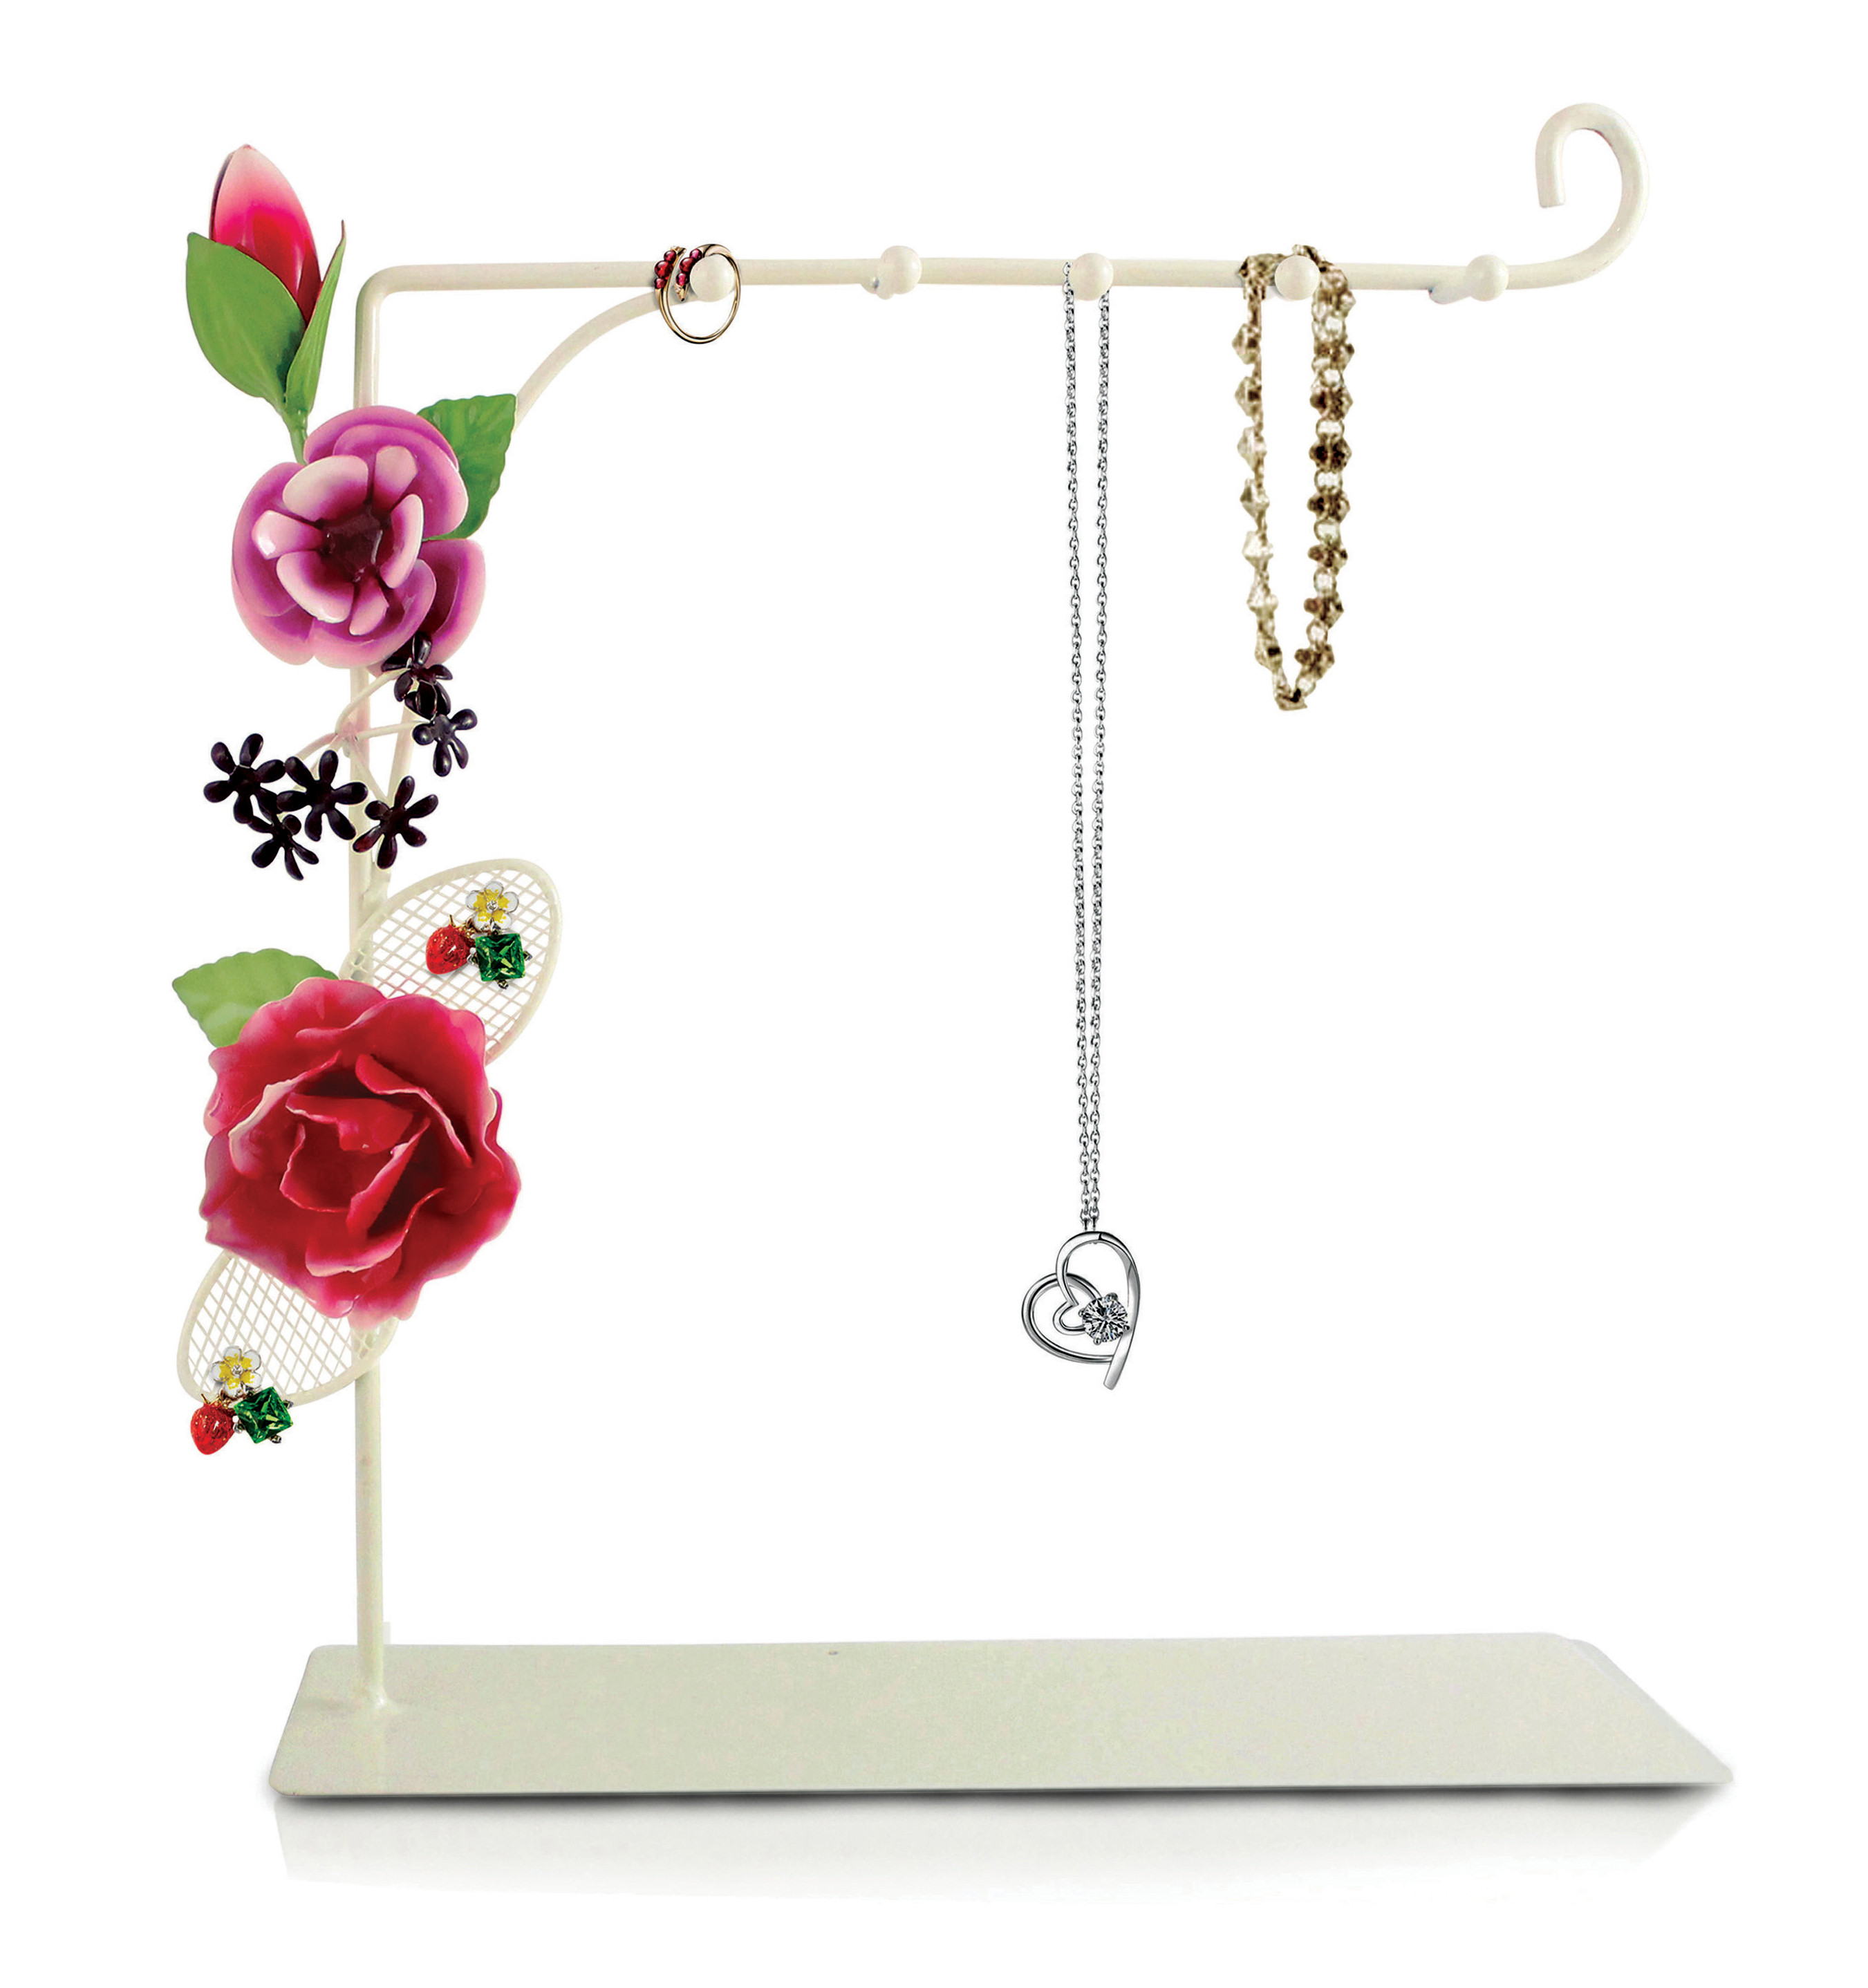 Bella Rosa Bella Rosa Necklace Holder